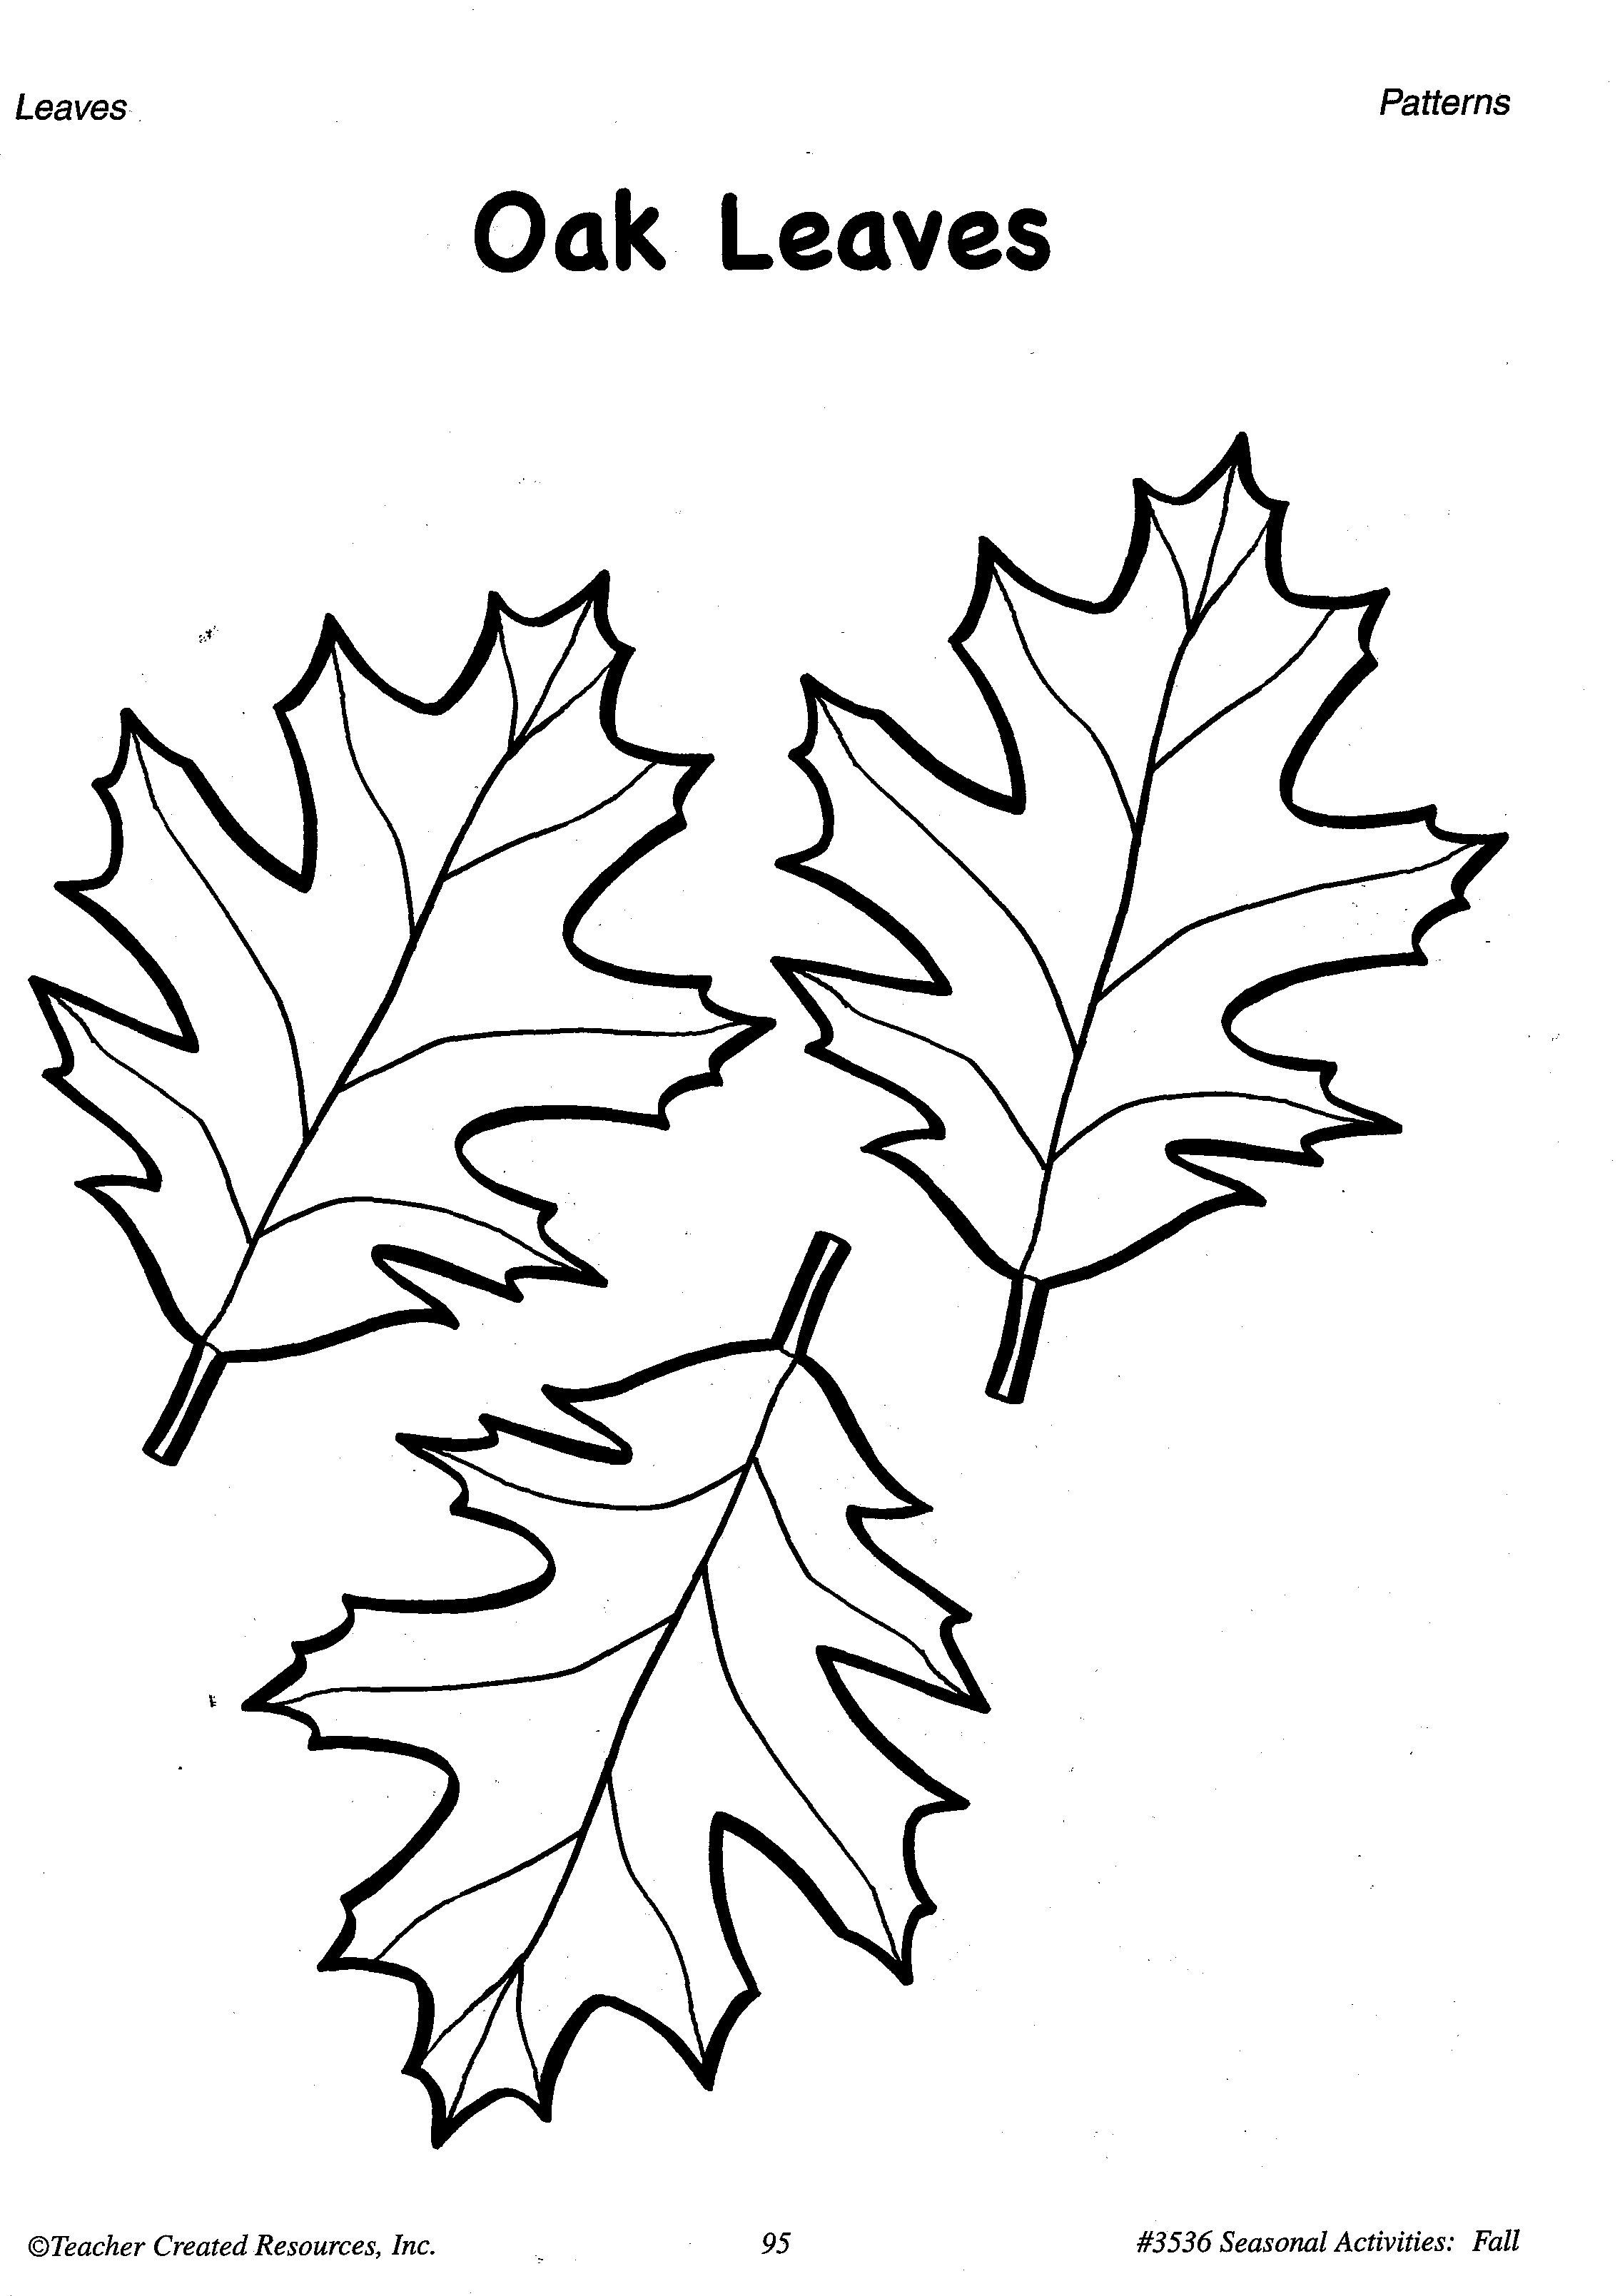 Printable Fall Leaves Patterns A Sample From The Teacher Resource Book Seasonal Activities Fall